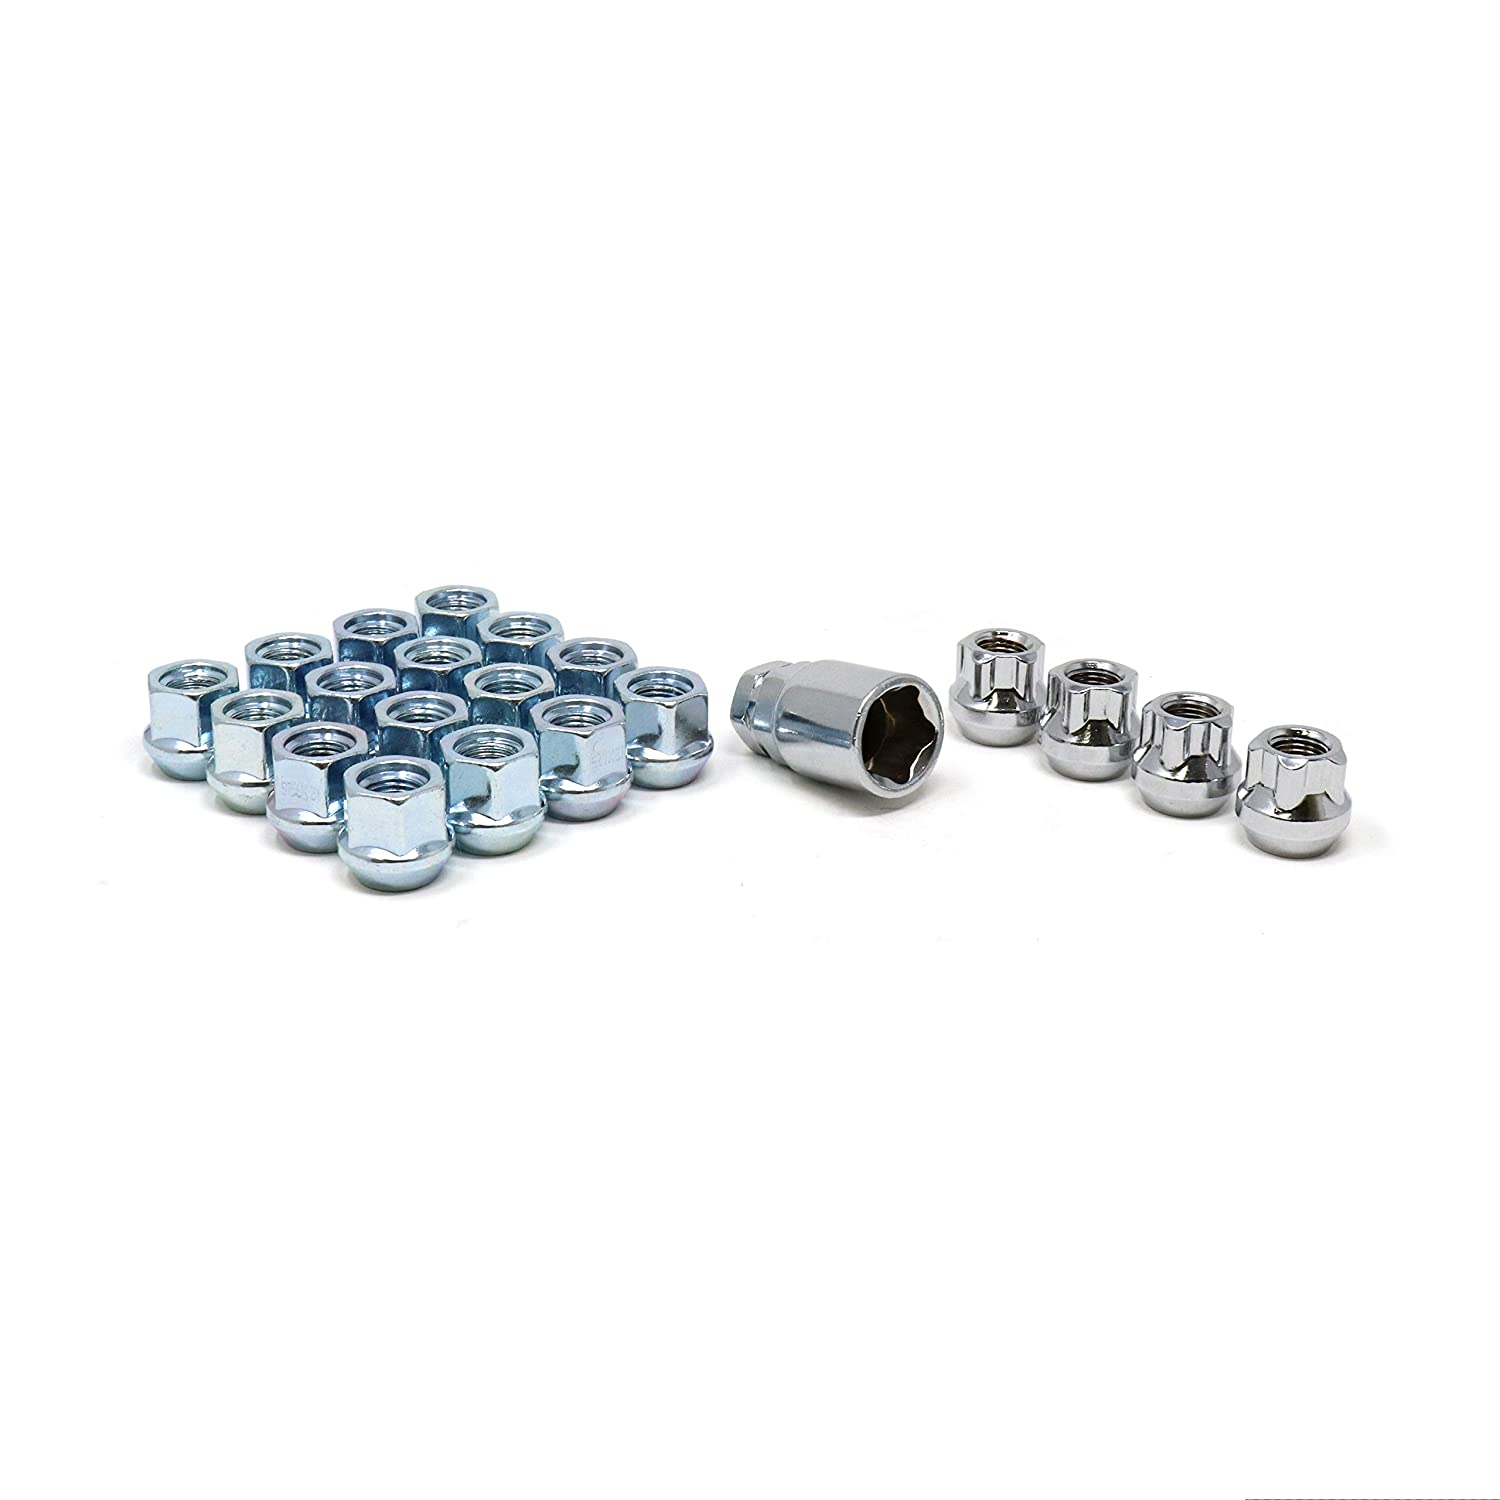 White Knight 791307-1SAM Chrome M12x1.50 Open End Bulge Acorn Lug Nut Kit with Wheel Locks, 20 Pack